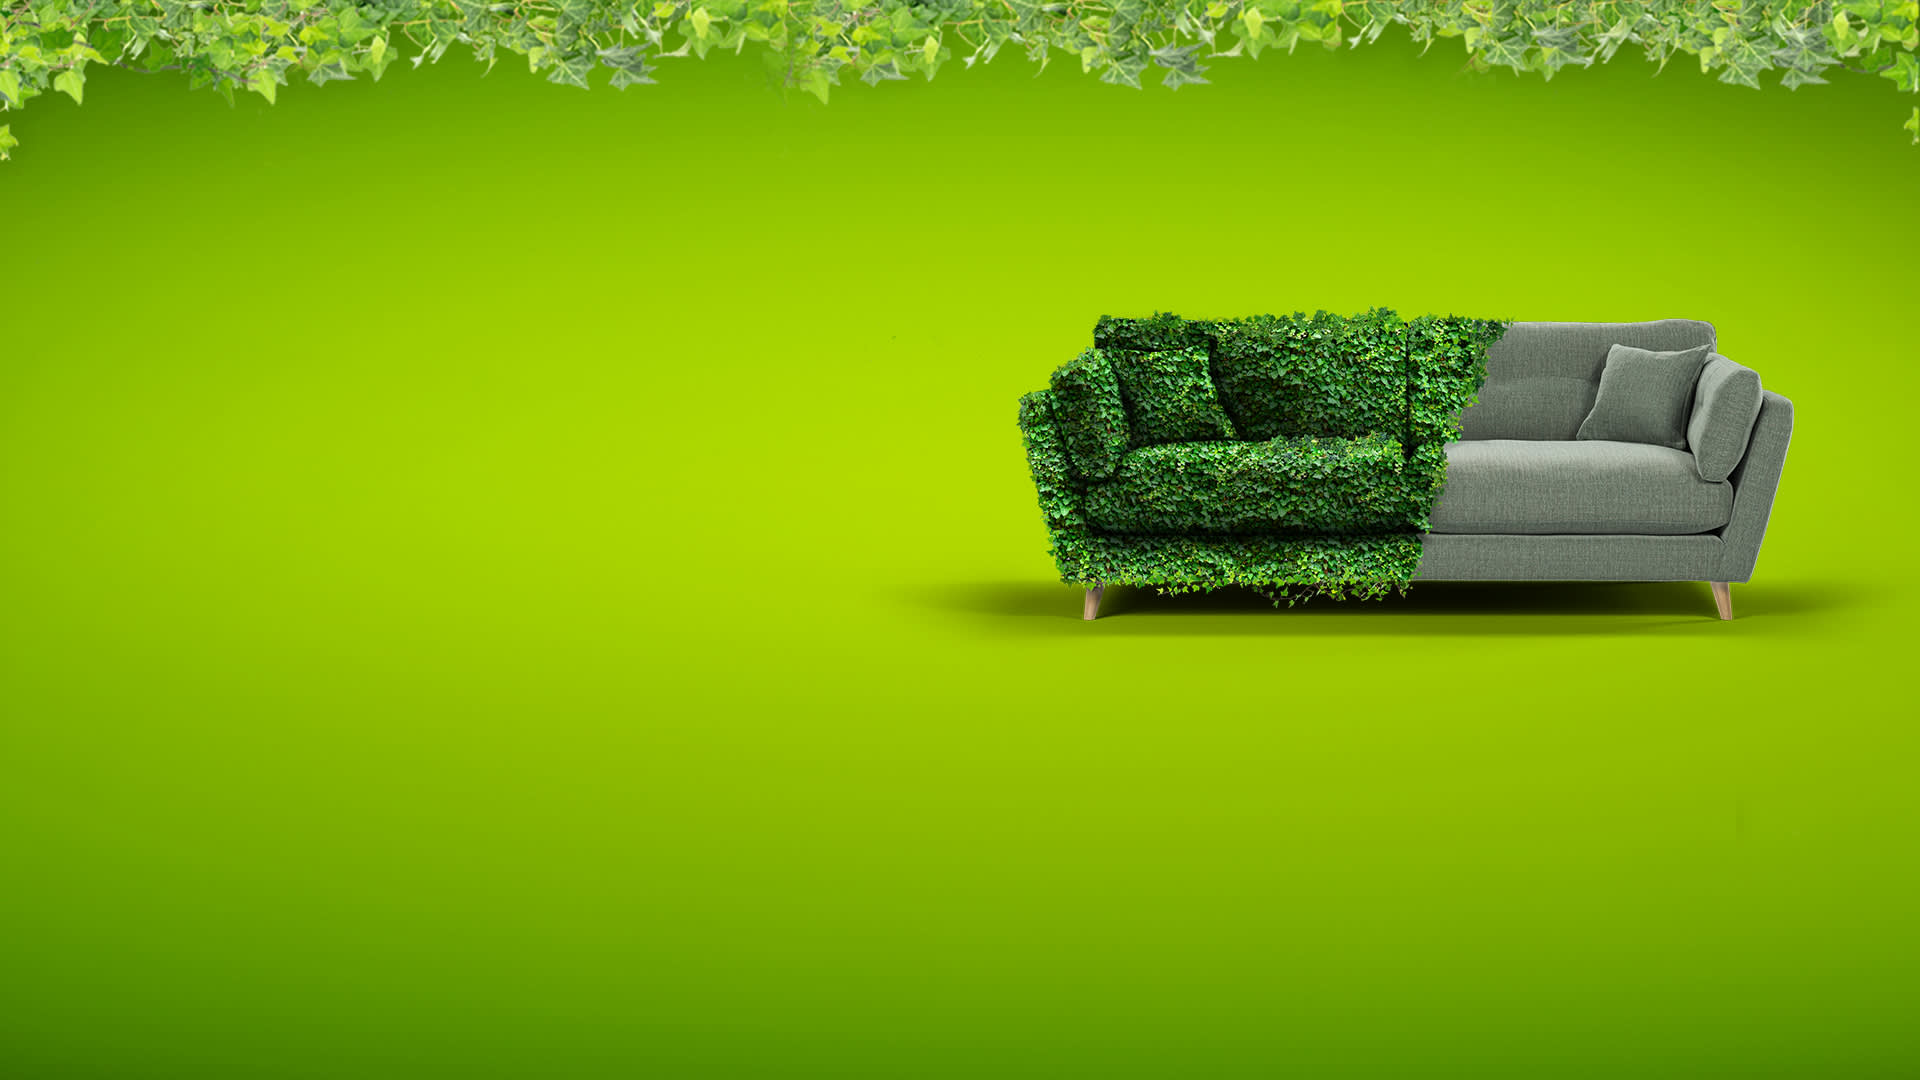 Green Friday at Sofology